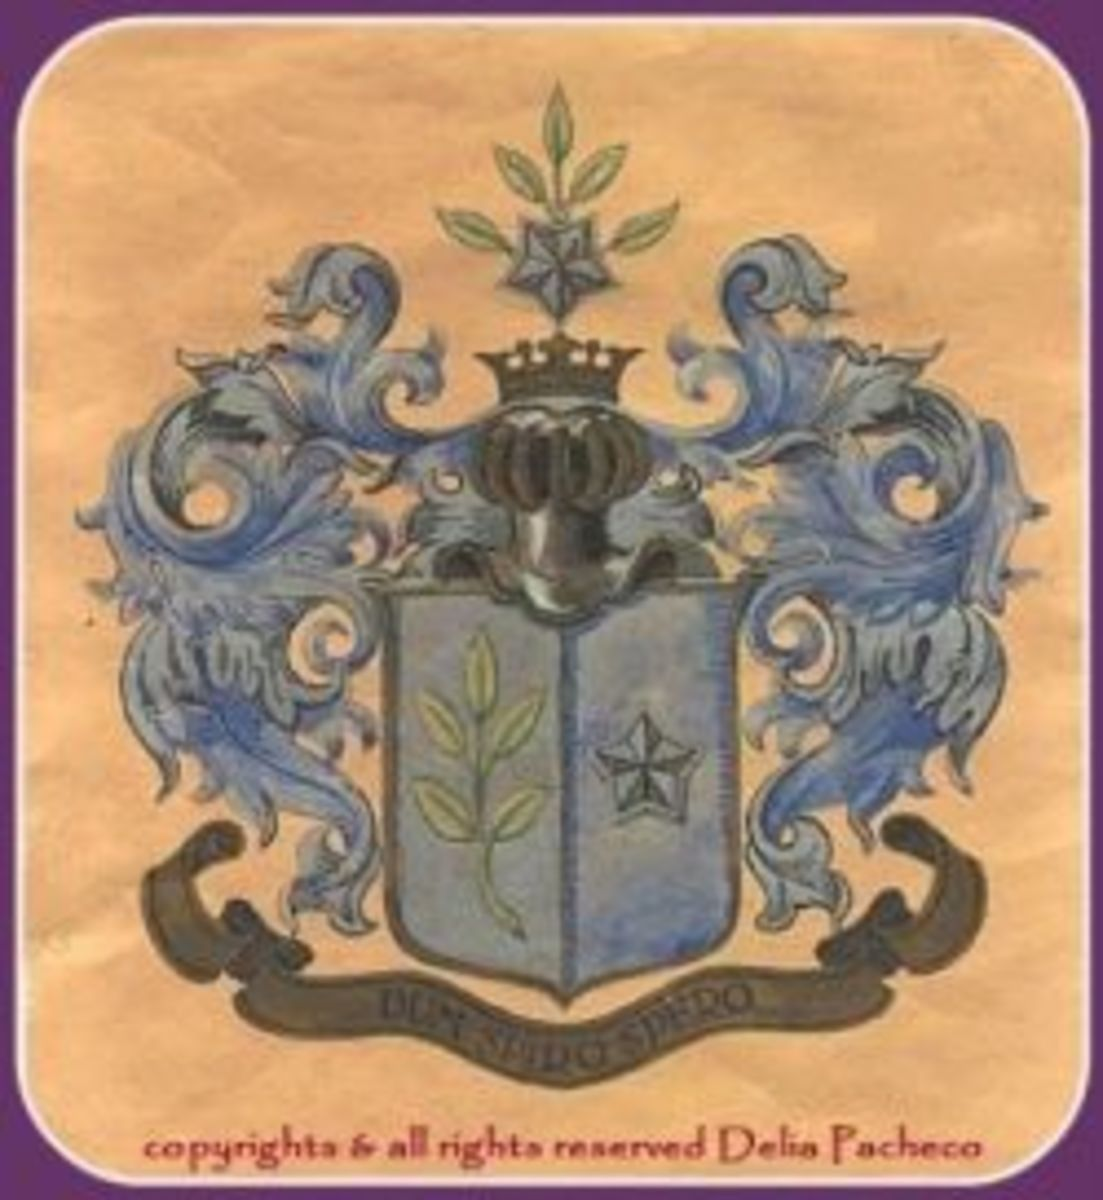 My Von Meyer Family Name and Coat of Arms